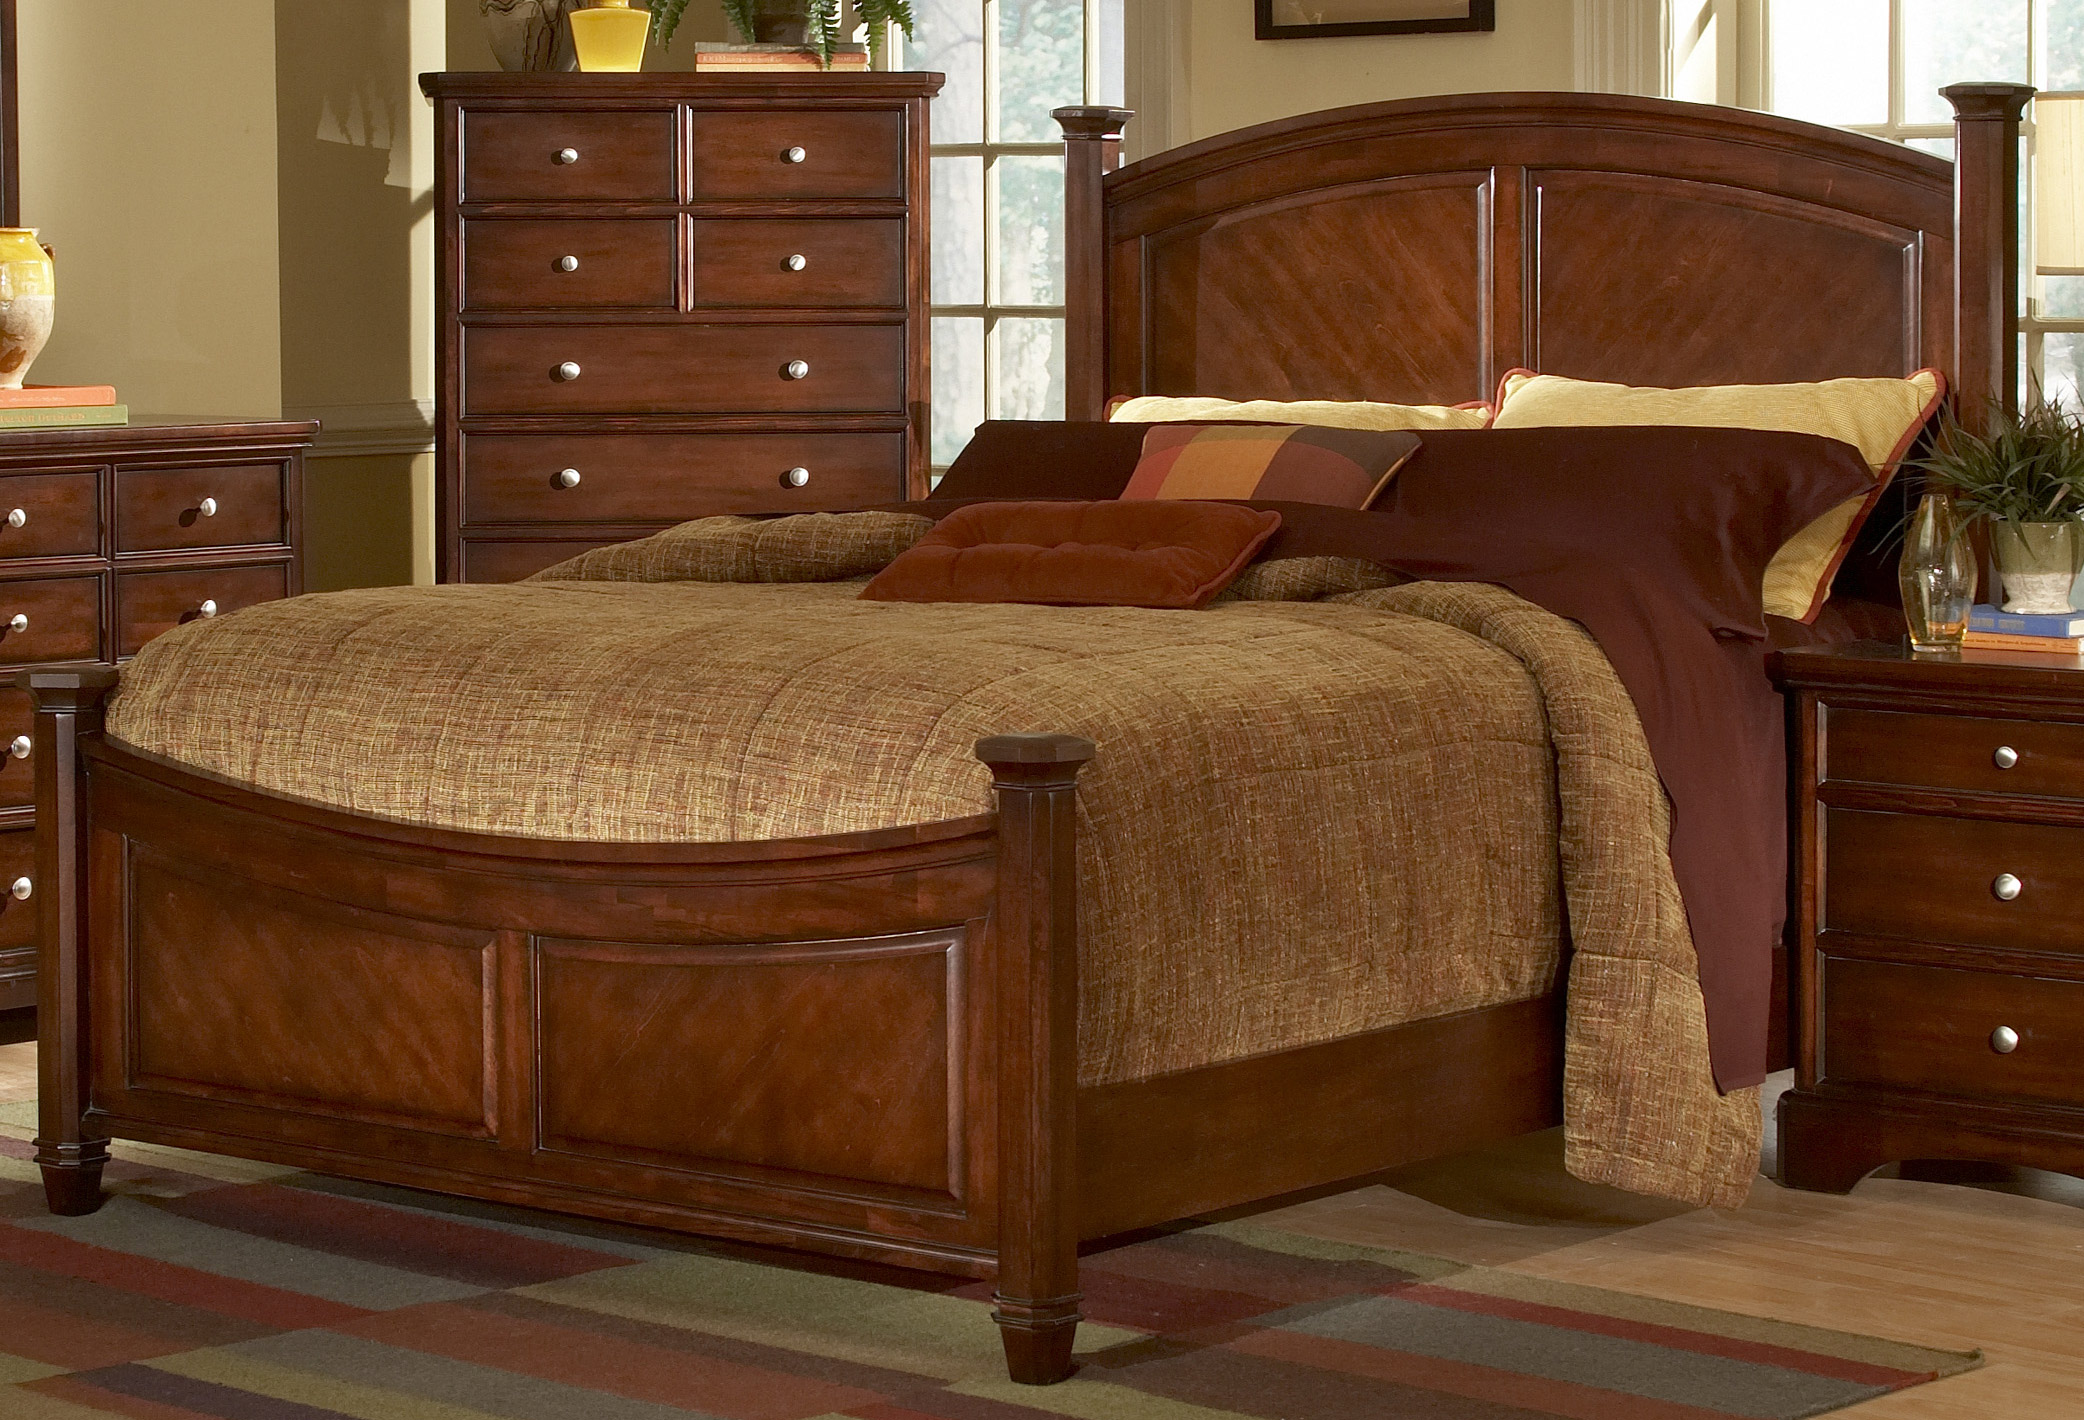 Homelegance laurel heights bed cherry 982c 1 Wooden bed furniture